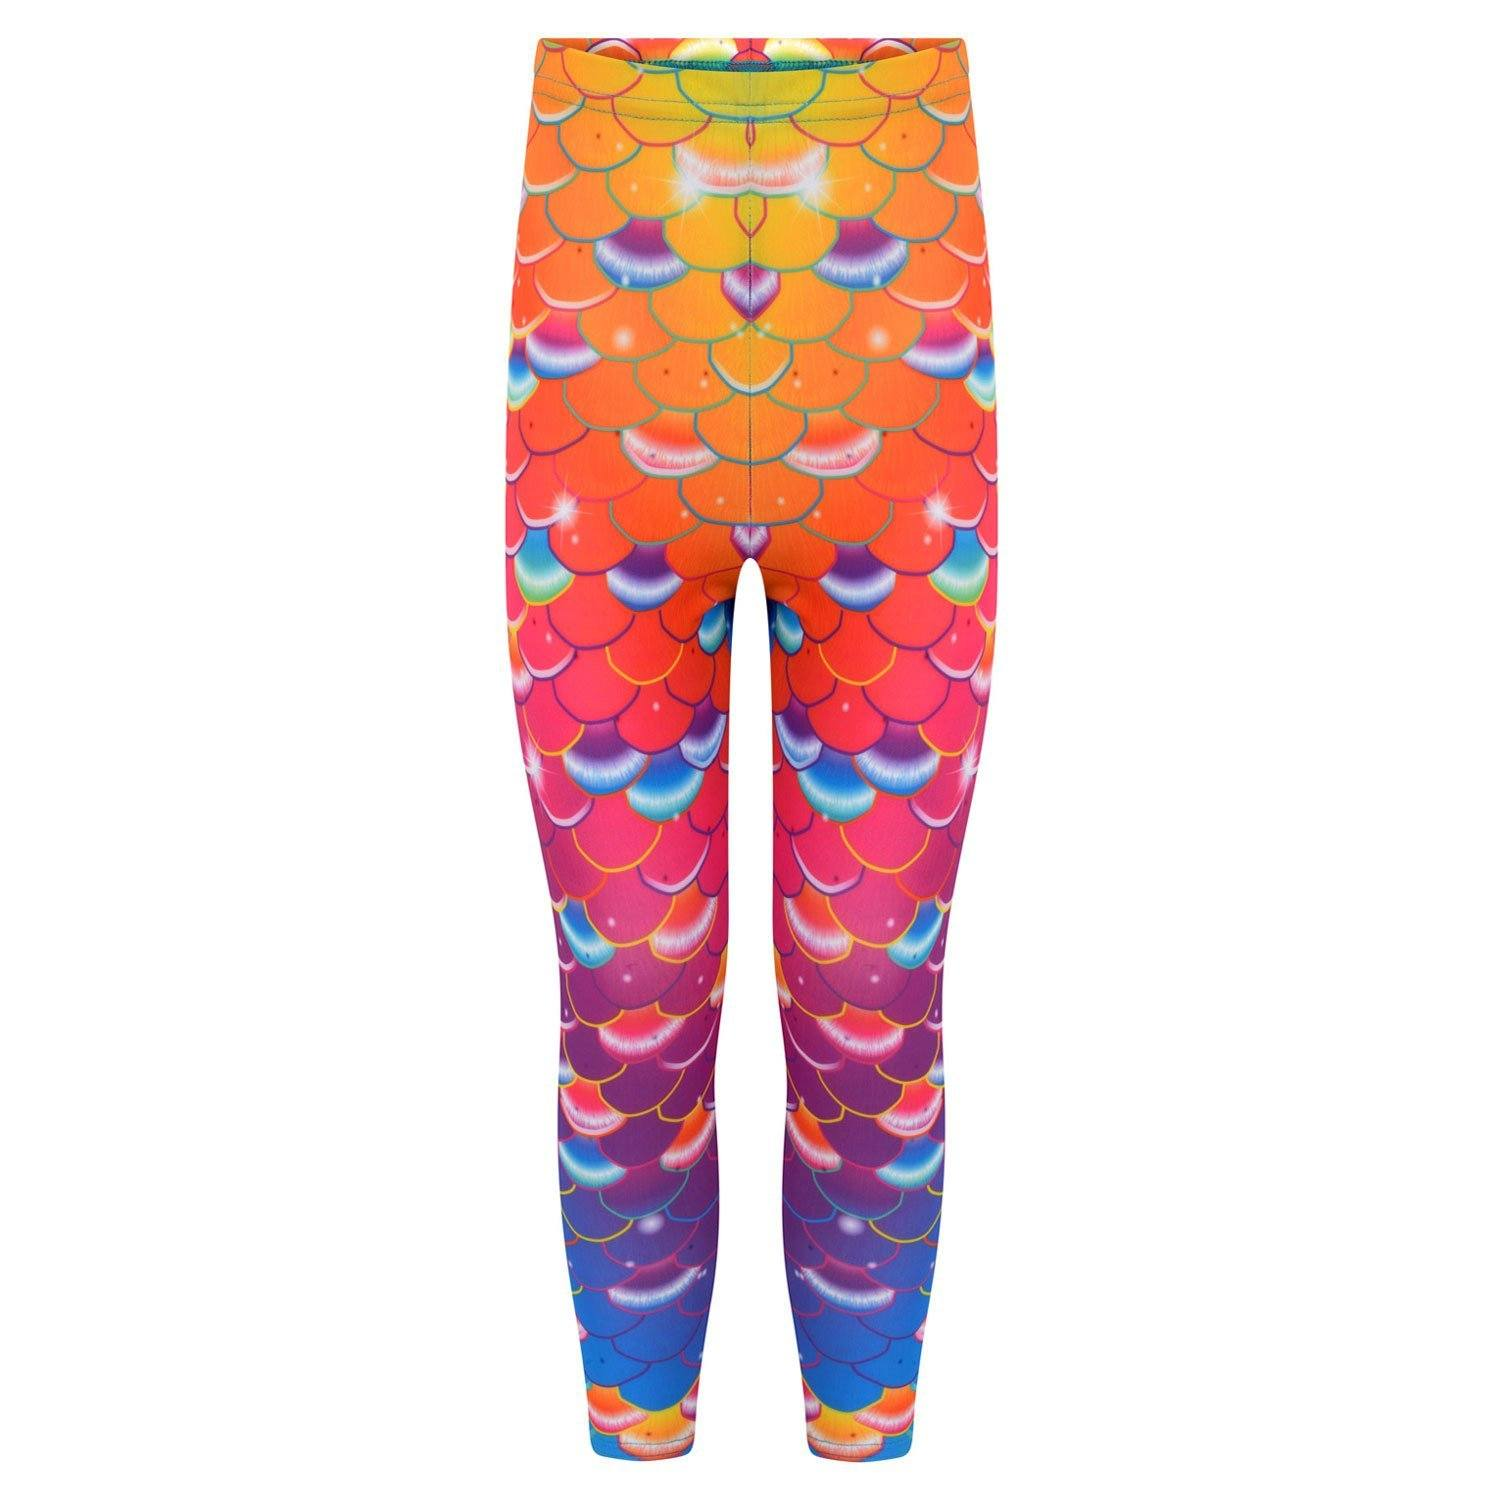 Coral Carnival Rainbow mermaid leggings